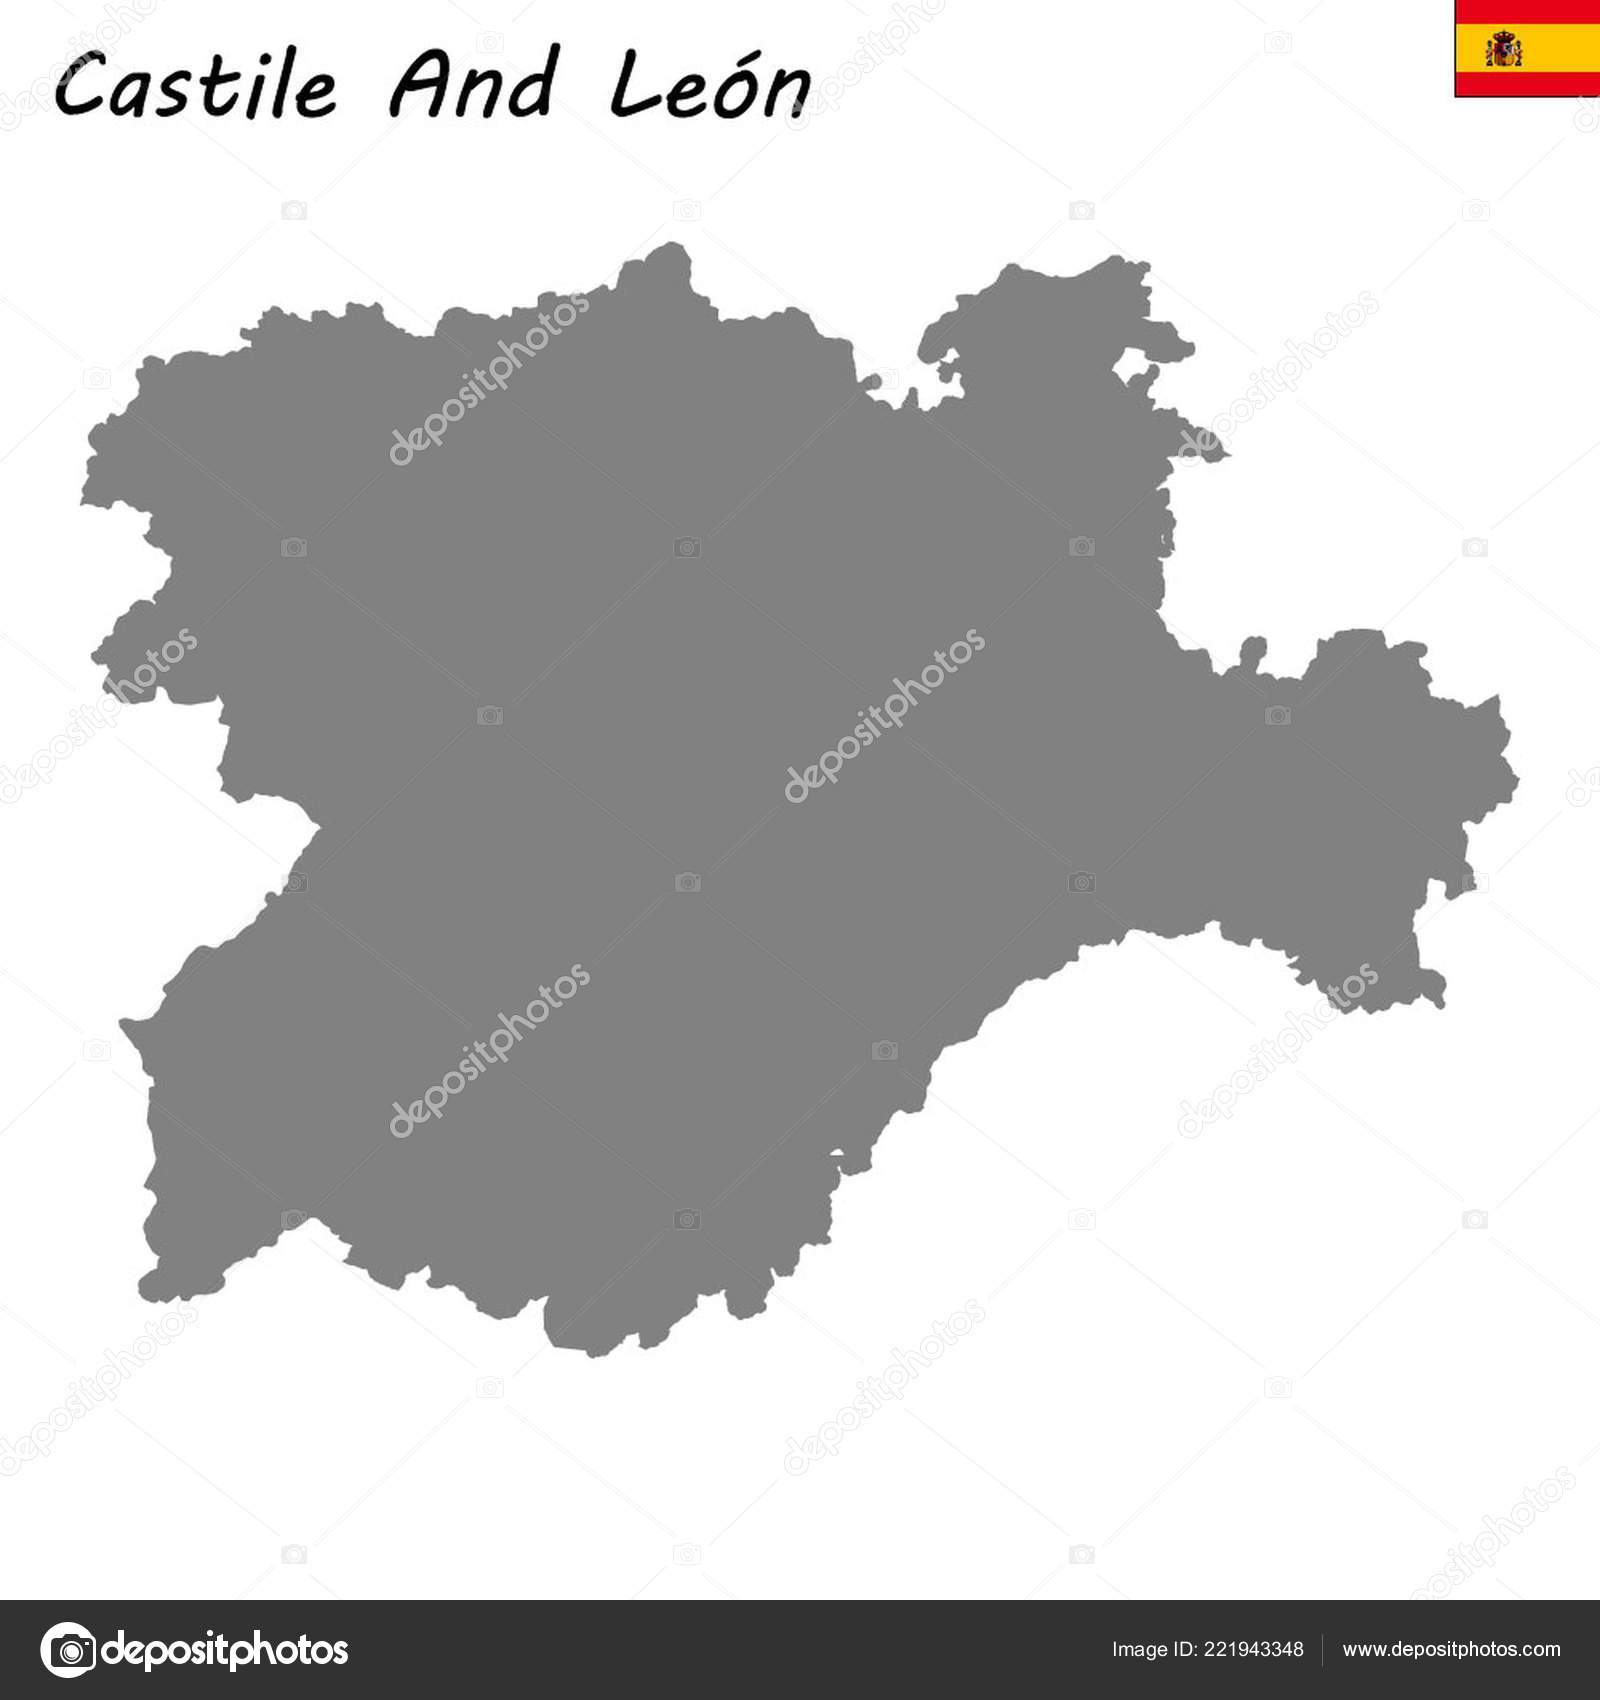 High Quality Map Autonomous Community Spain Castile Leon — Stock on bay of biscay map, viceroyalty of peru map, duchy of burgundy map, castile europe map, republic of florence map, united kingdom on world map, republic of venice map, duchy of brittany map, kingdom of castile in spain, republic of genoa map, kingdom of denmark map, kingdom of burgundy map,